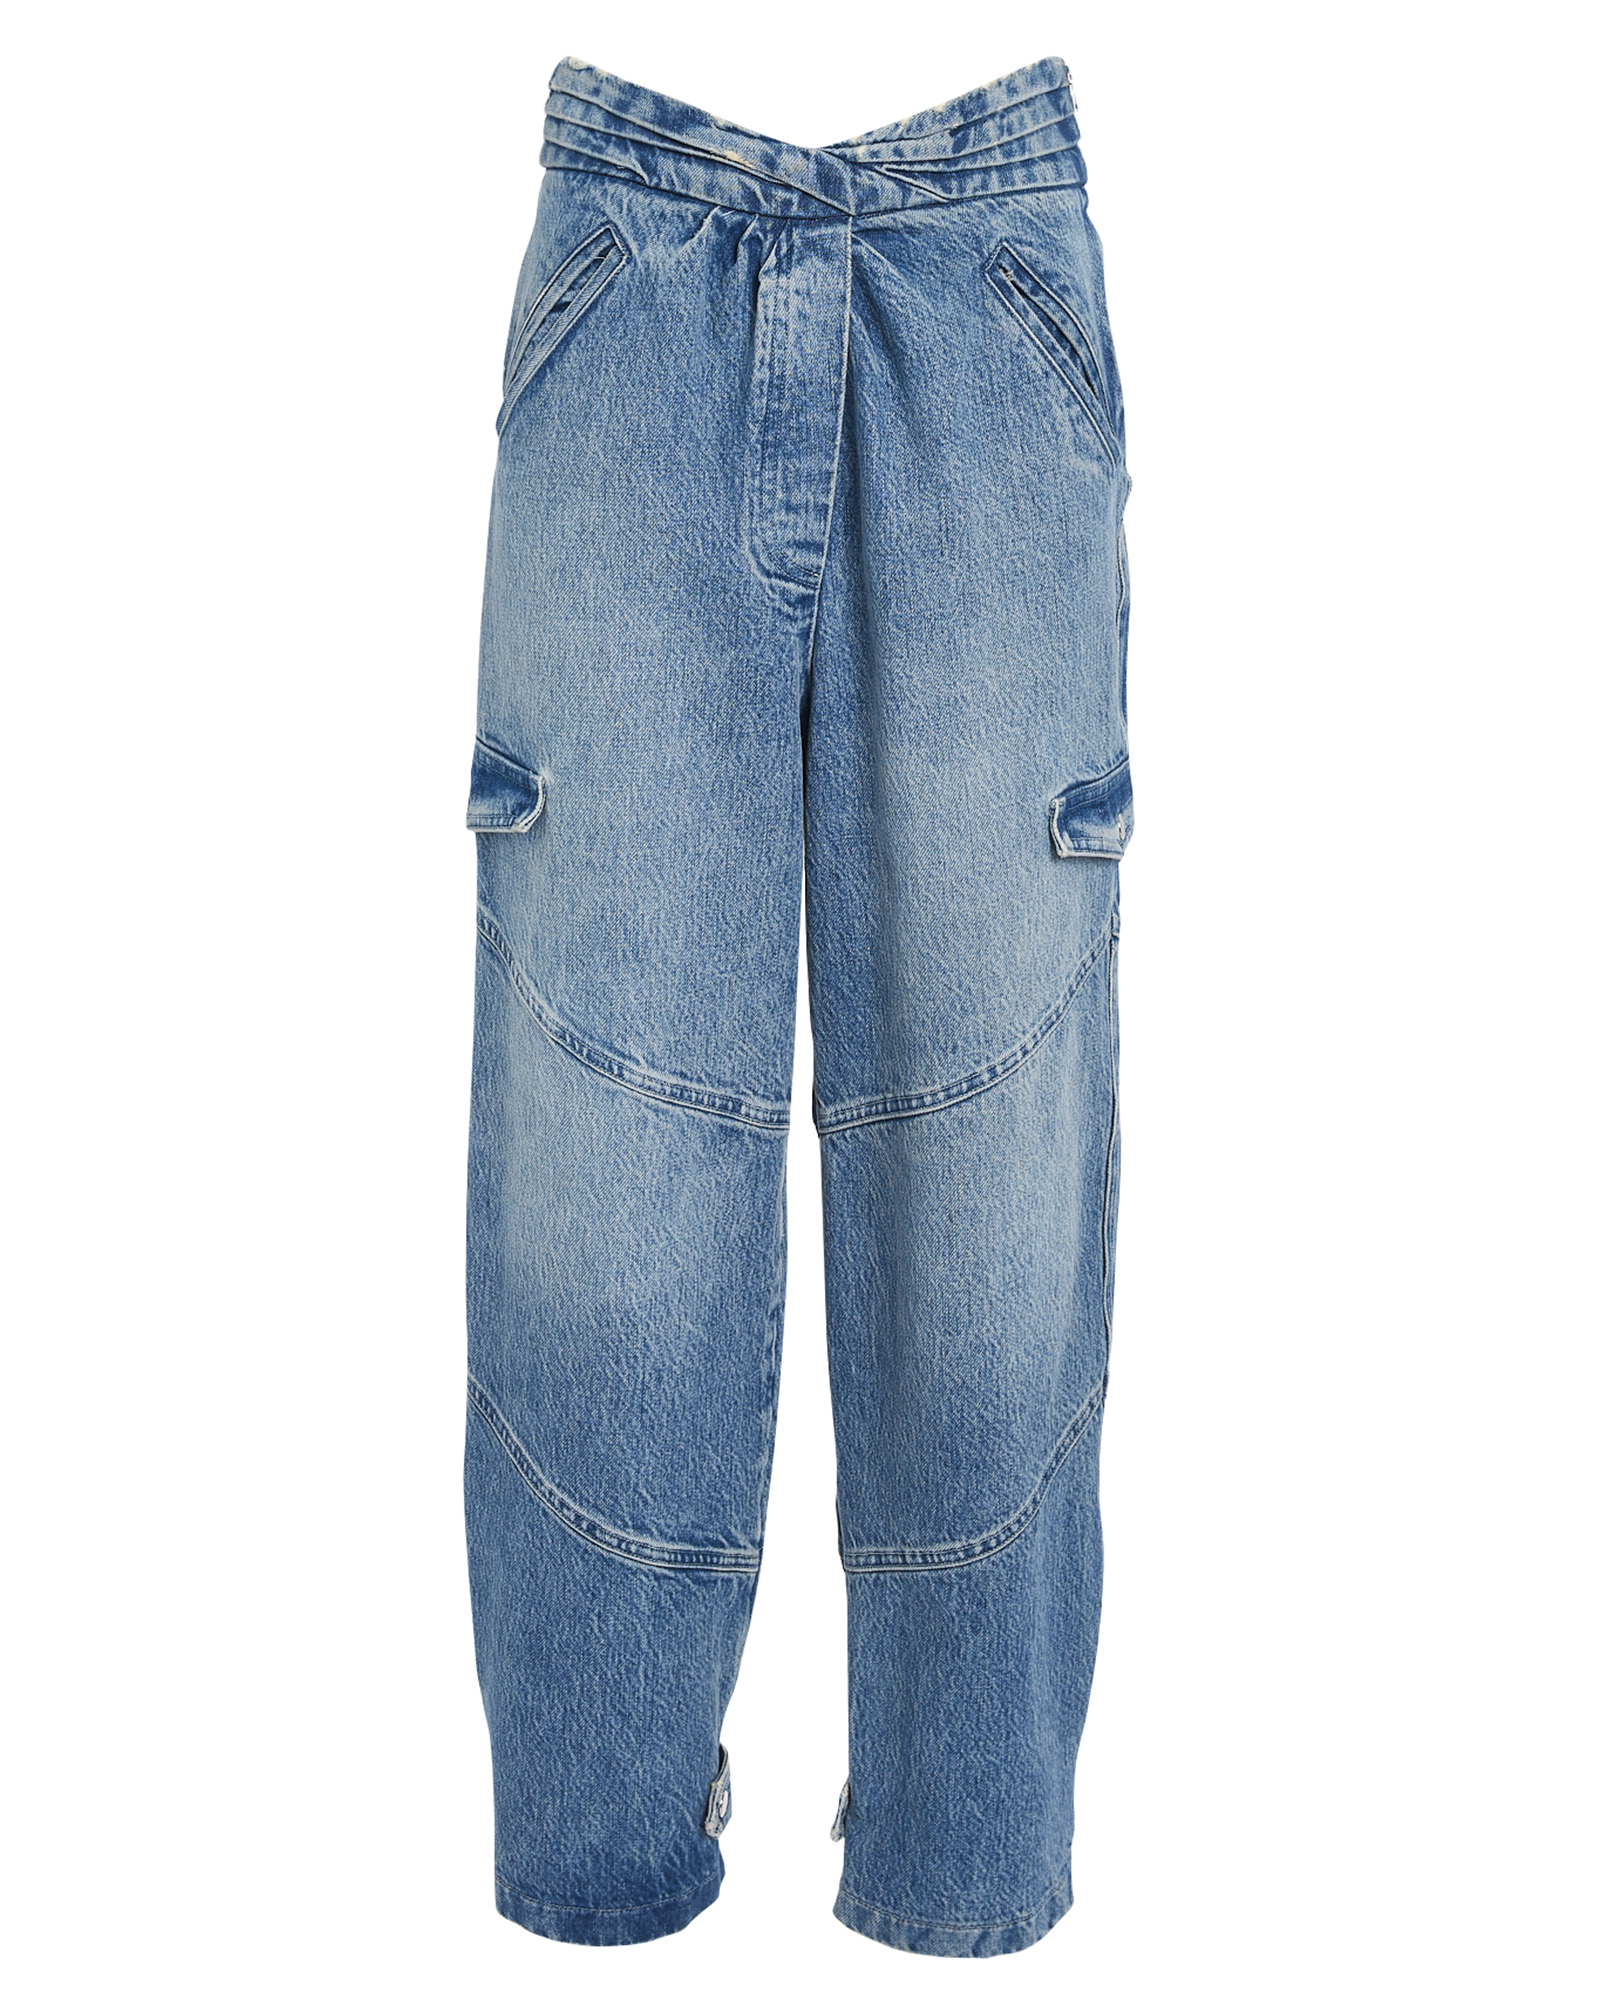 Rta Jeans RTA DALLAS HIGH-WAIST RELAXED JEANS